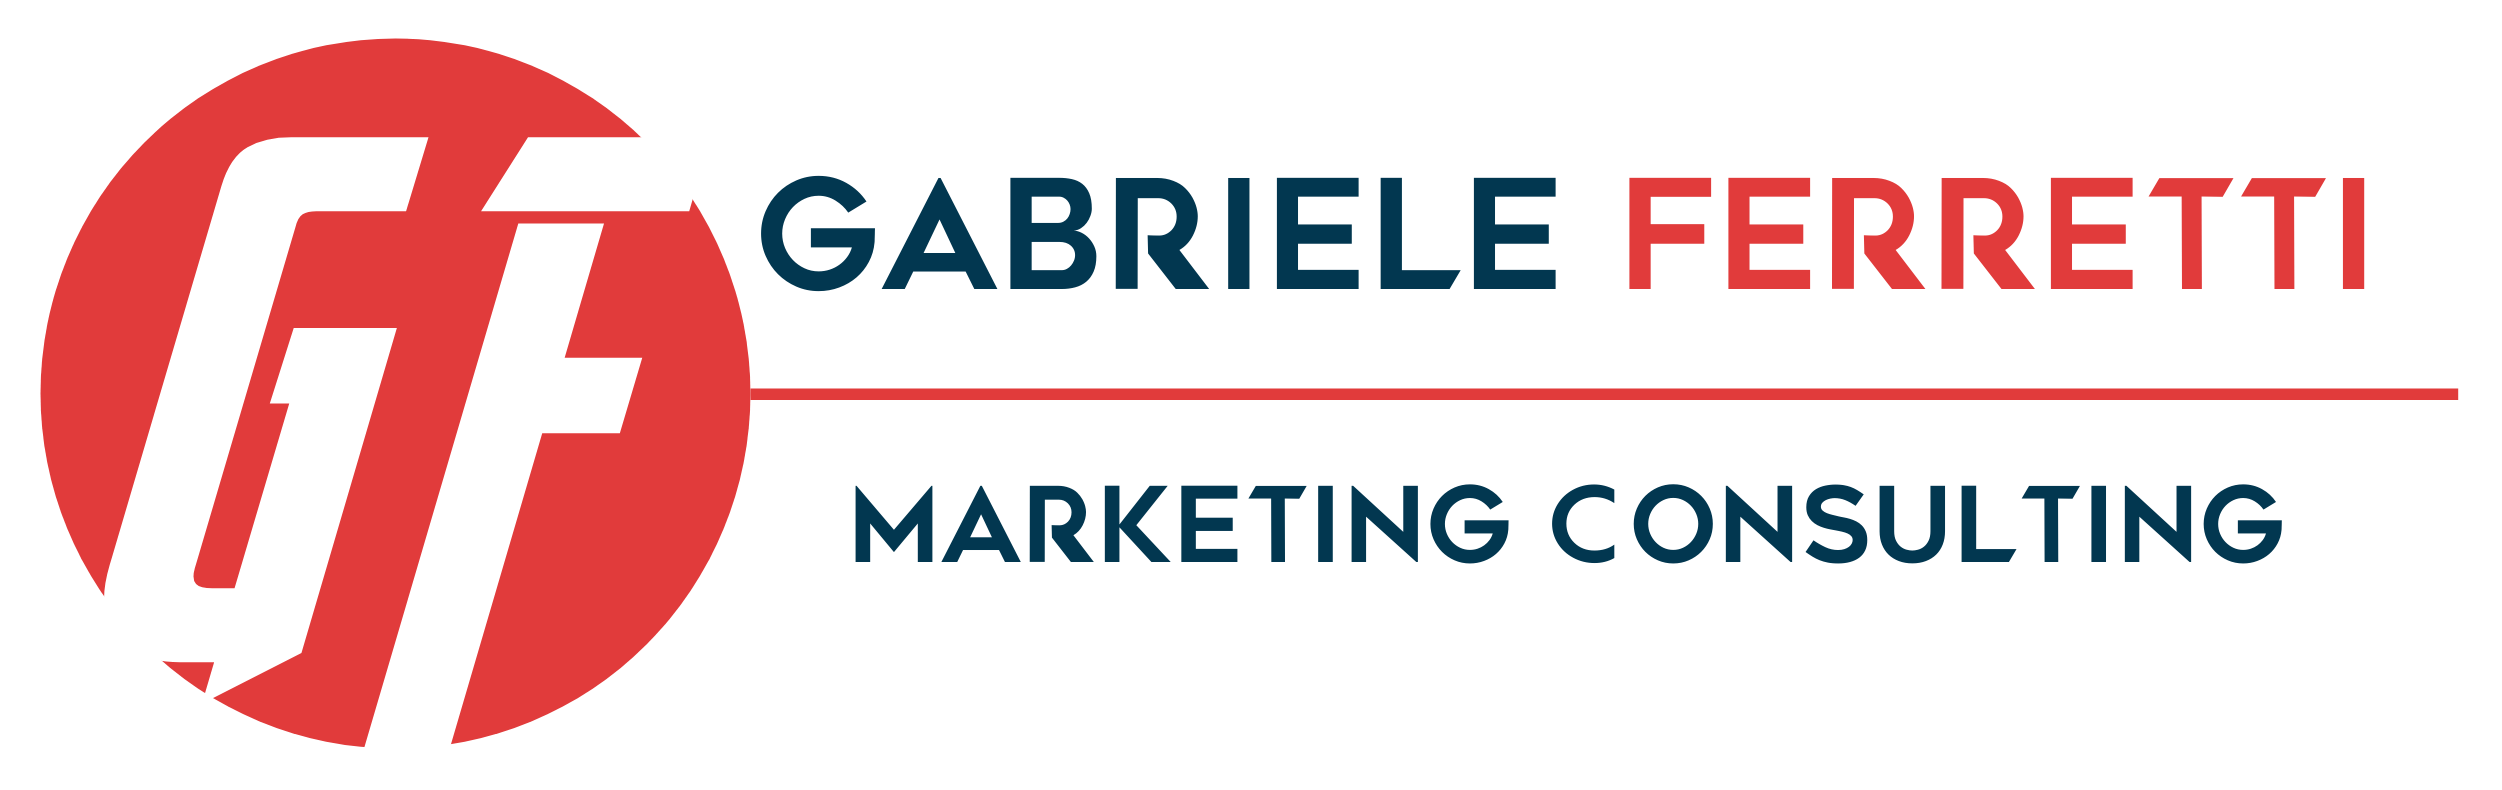 Gabriele Ferretti – Consulente Marketing